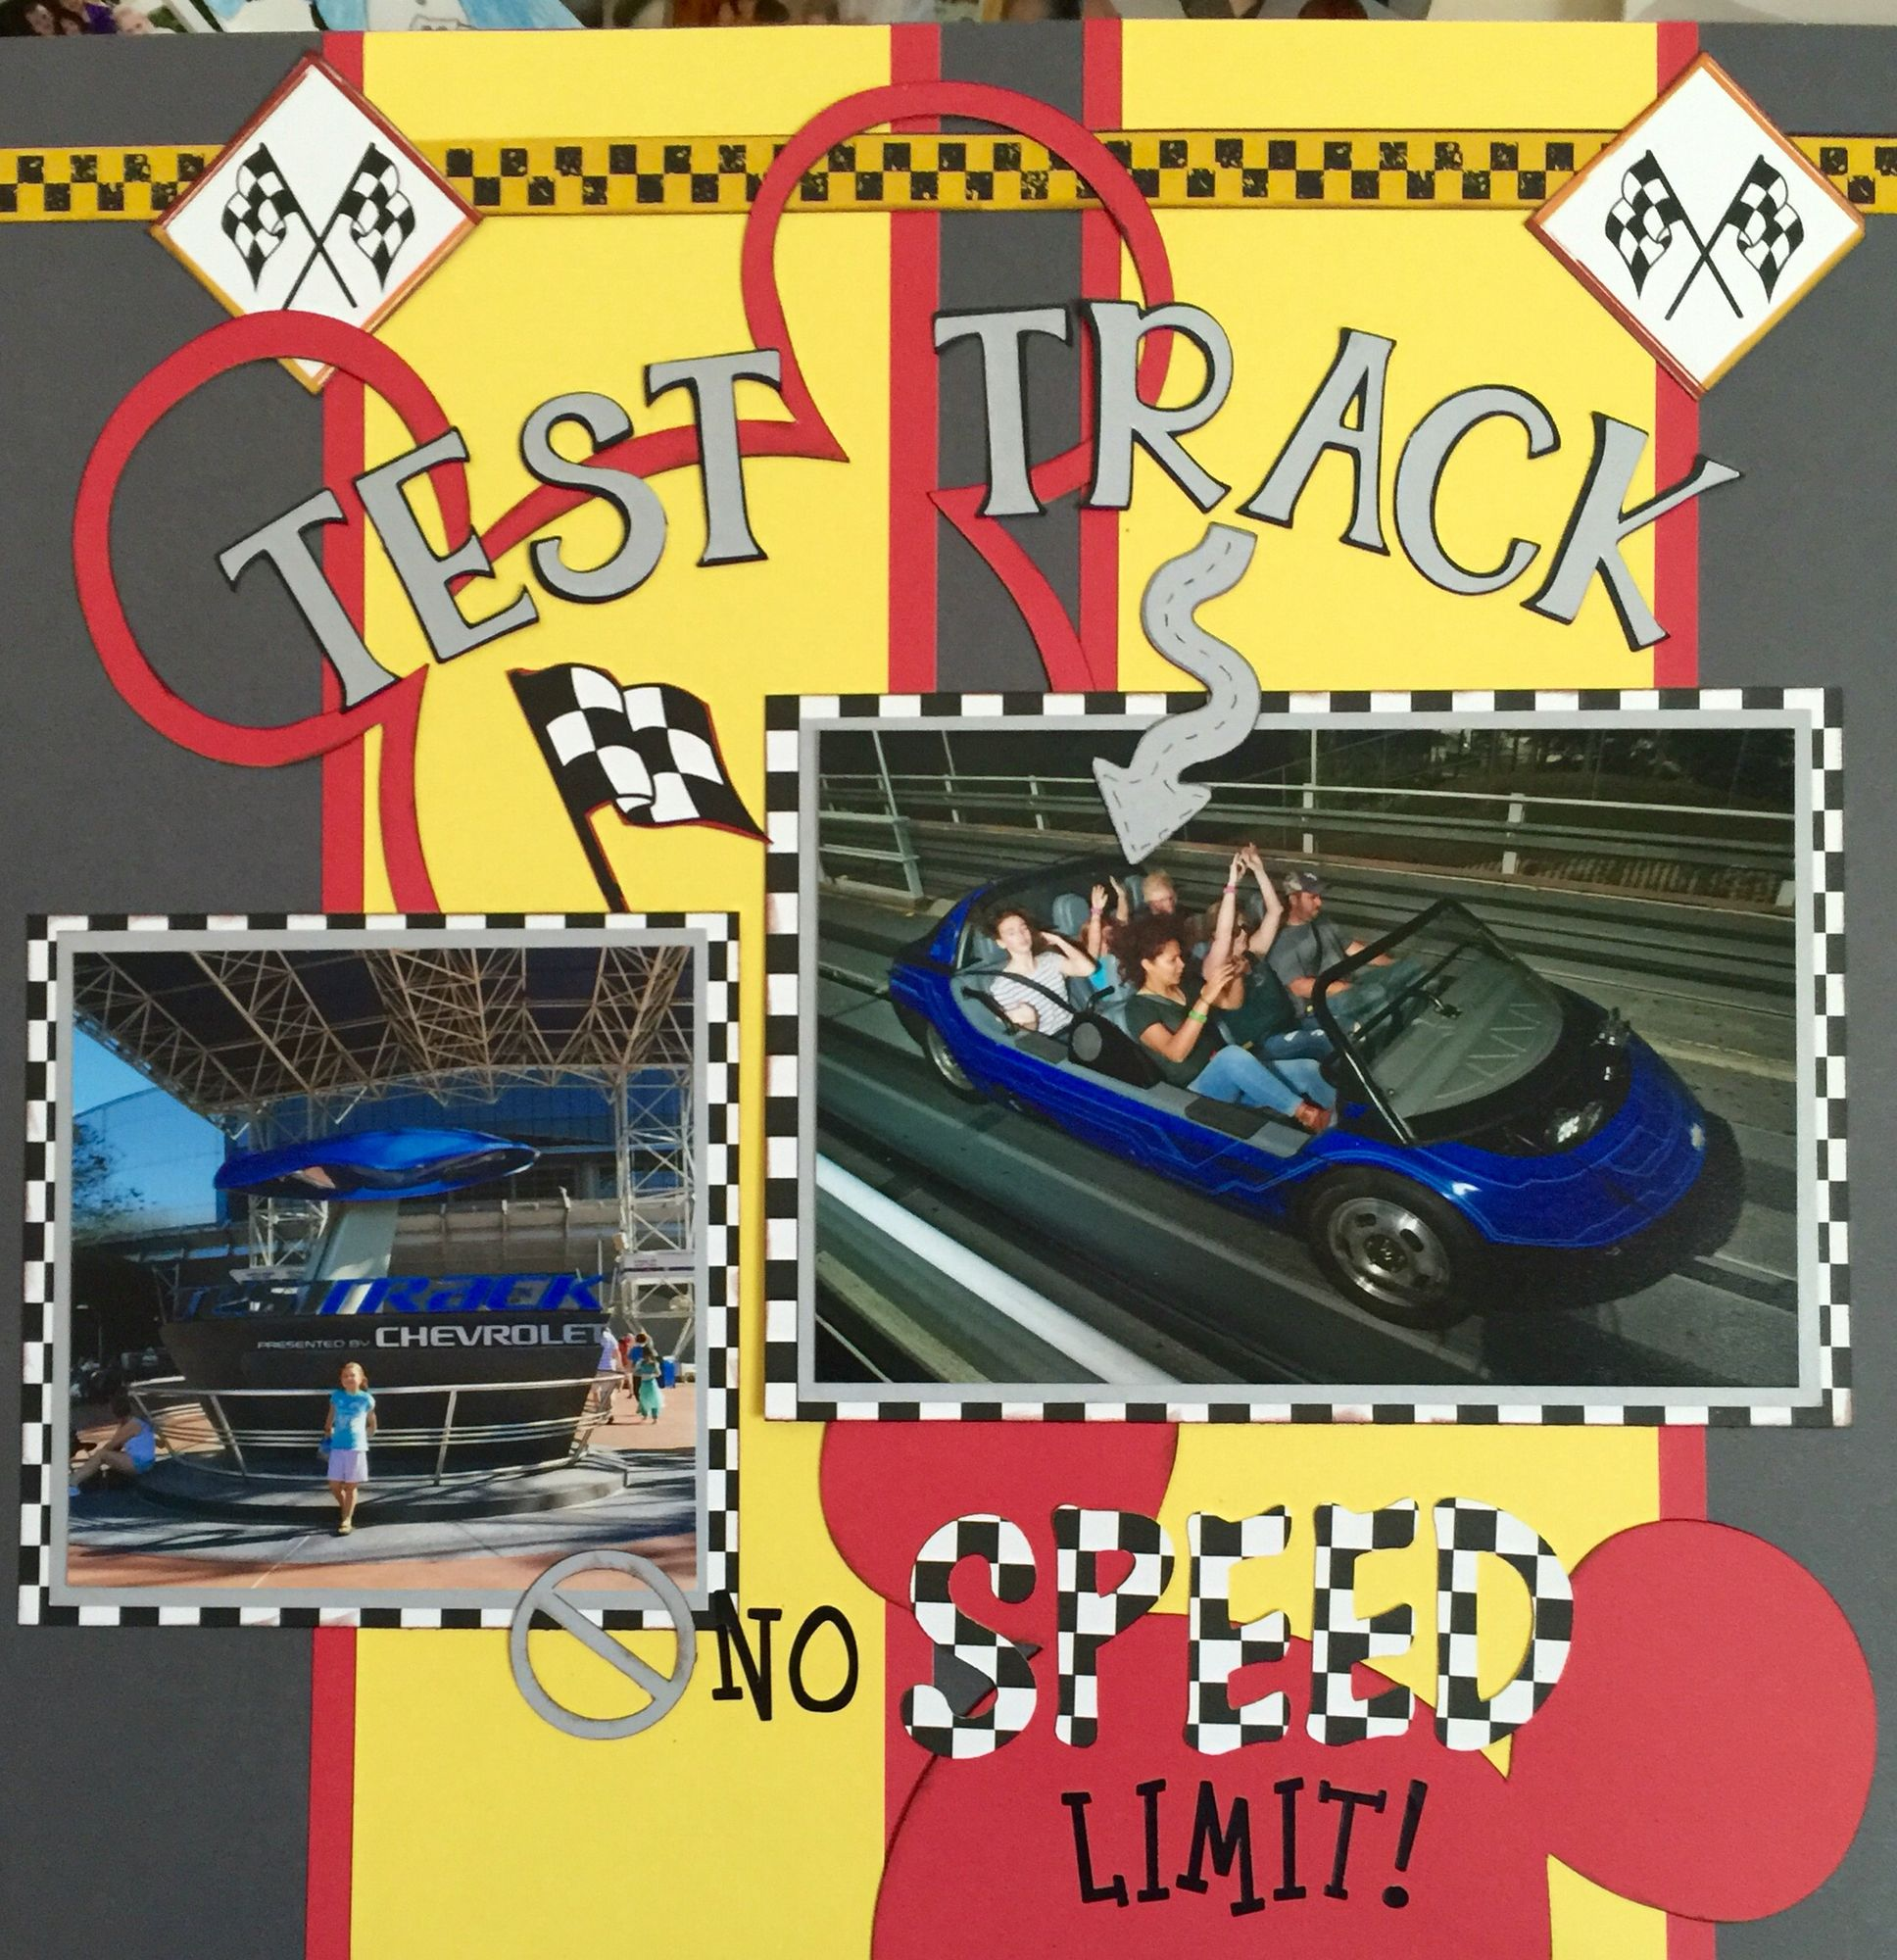 Test Track layout